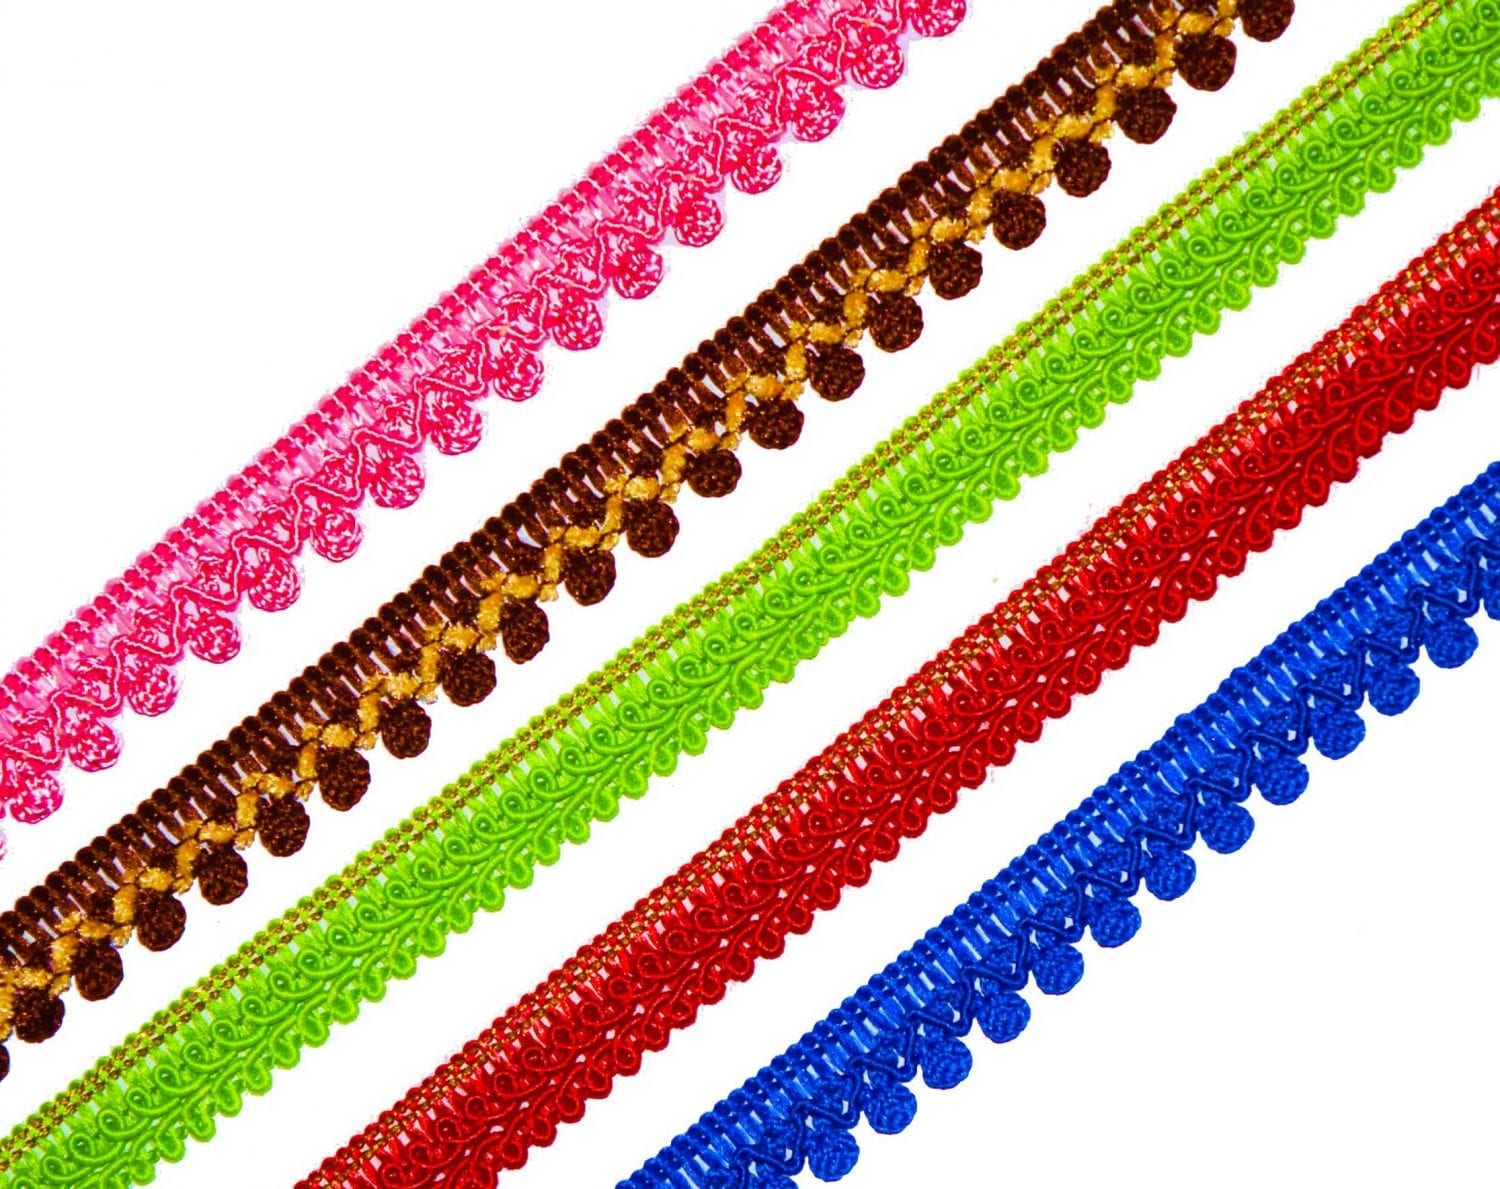 Thin Lace 10 meters Long Piece LC107 - All colours available - 12 mm / Half Inch Width 1